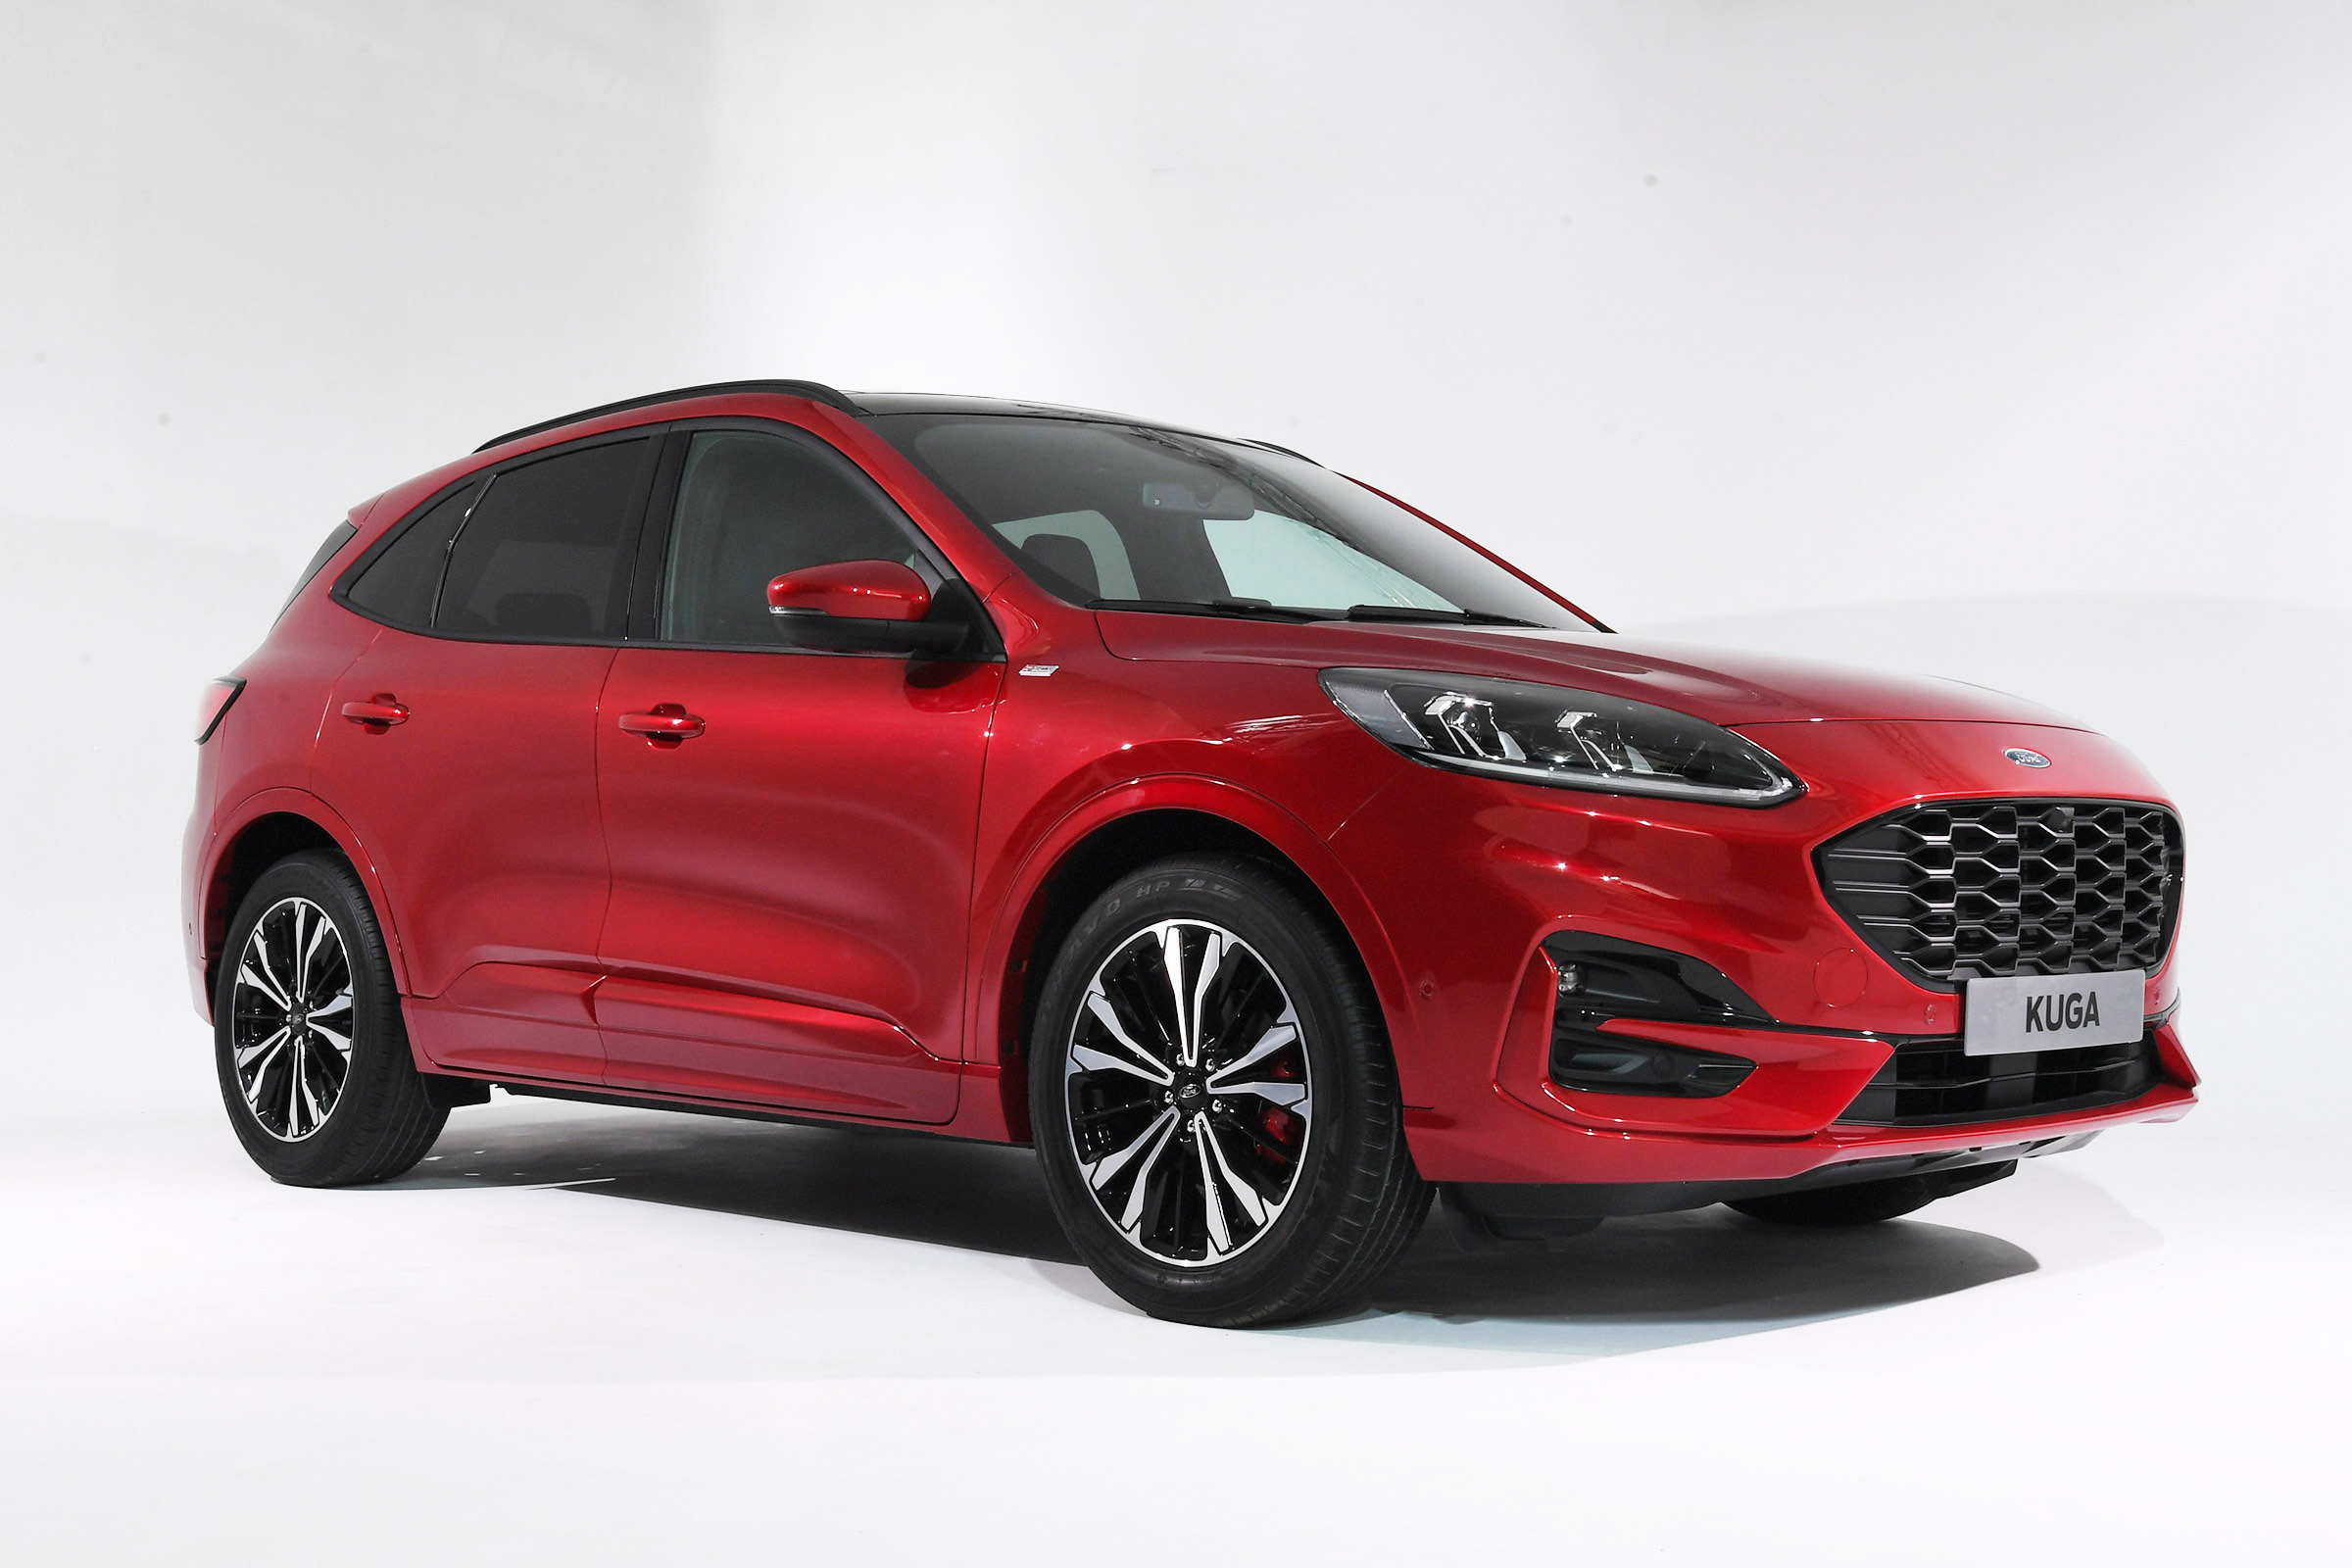 new 2019 ford kuga uk prices and specs confirmed  auto